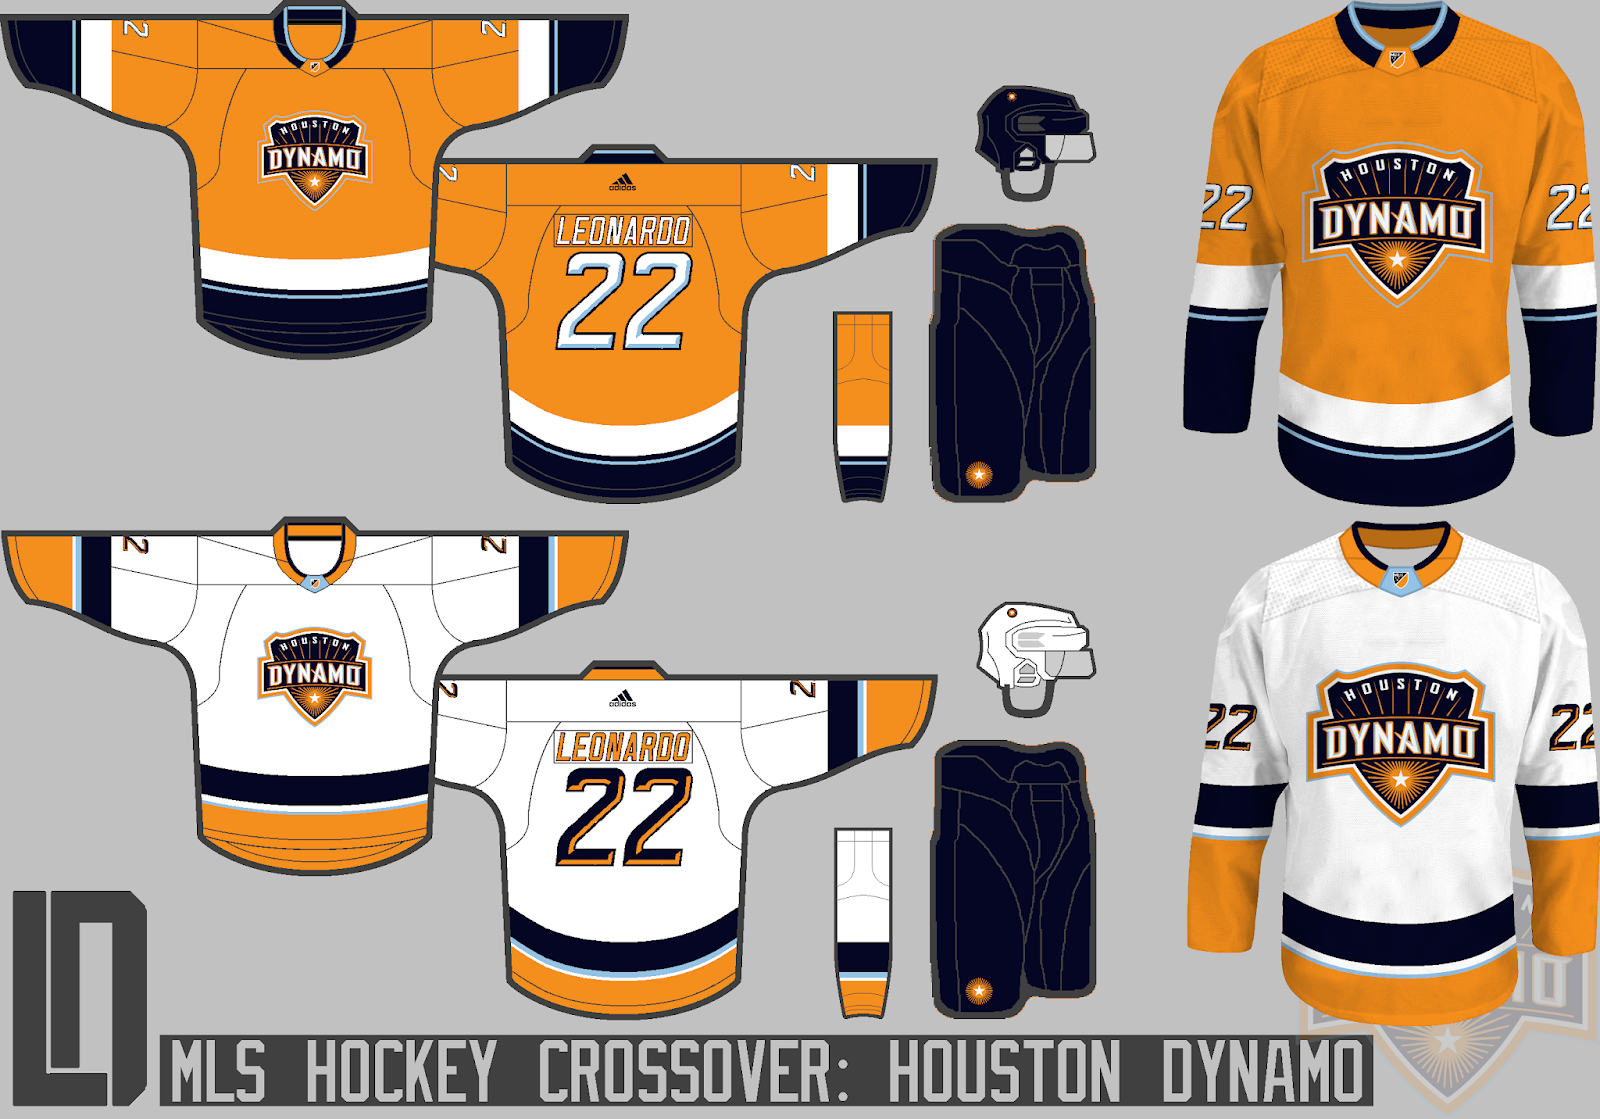 Houston+Dynamo+Concept.png